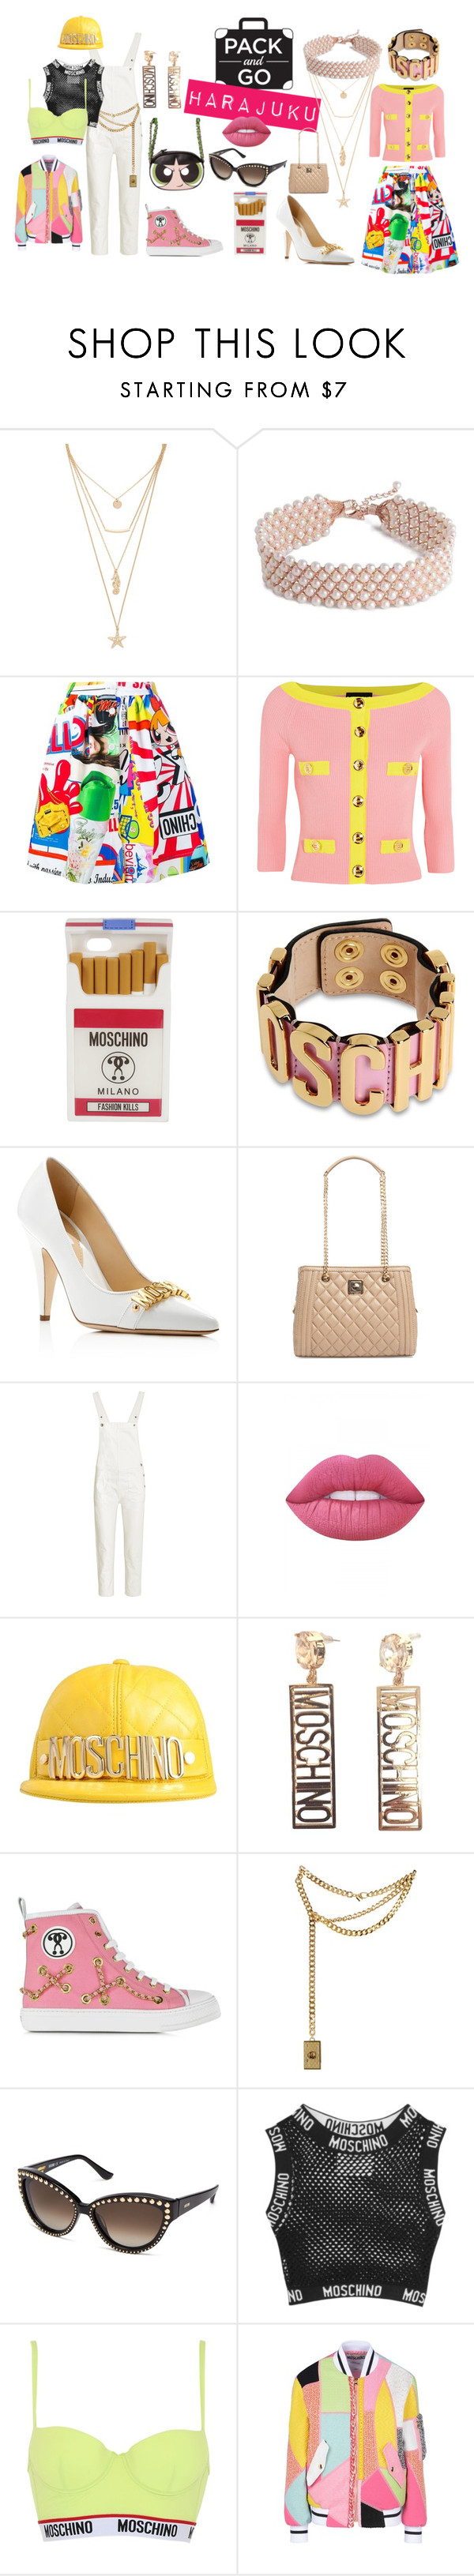 """""""The Lolita and the Tramp"""" by hautegrits ❤ liked on Polyvore featuring Forever 21, Moschino, Boutique Moschino, Love Moschino, M.i.h Jeans, Lime Crime, JeremyScott, harajuku, tokyo and Packandgo"""